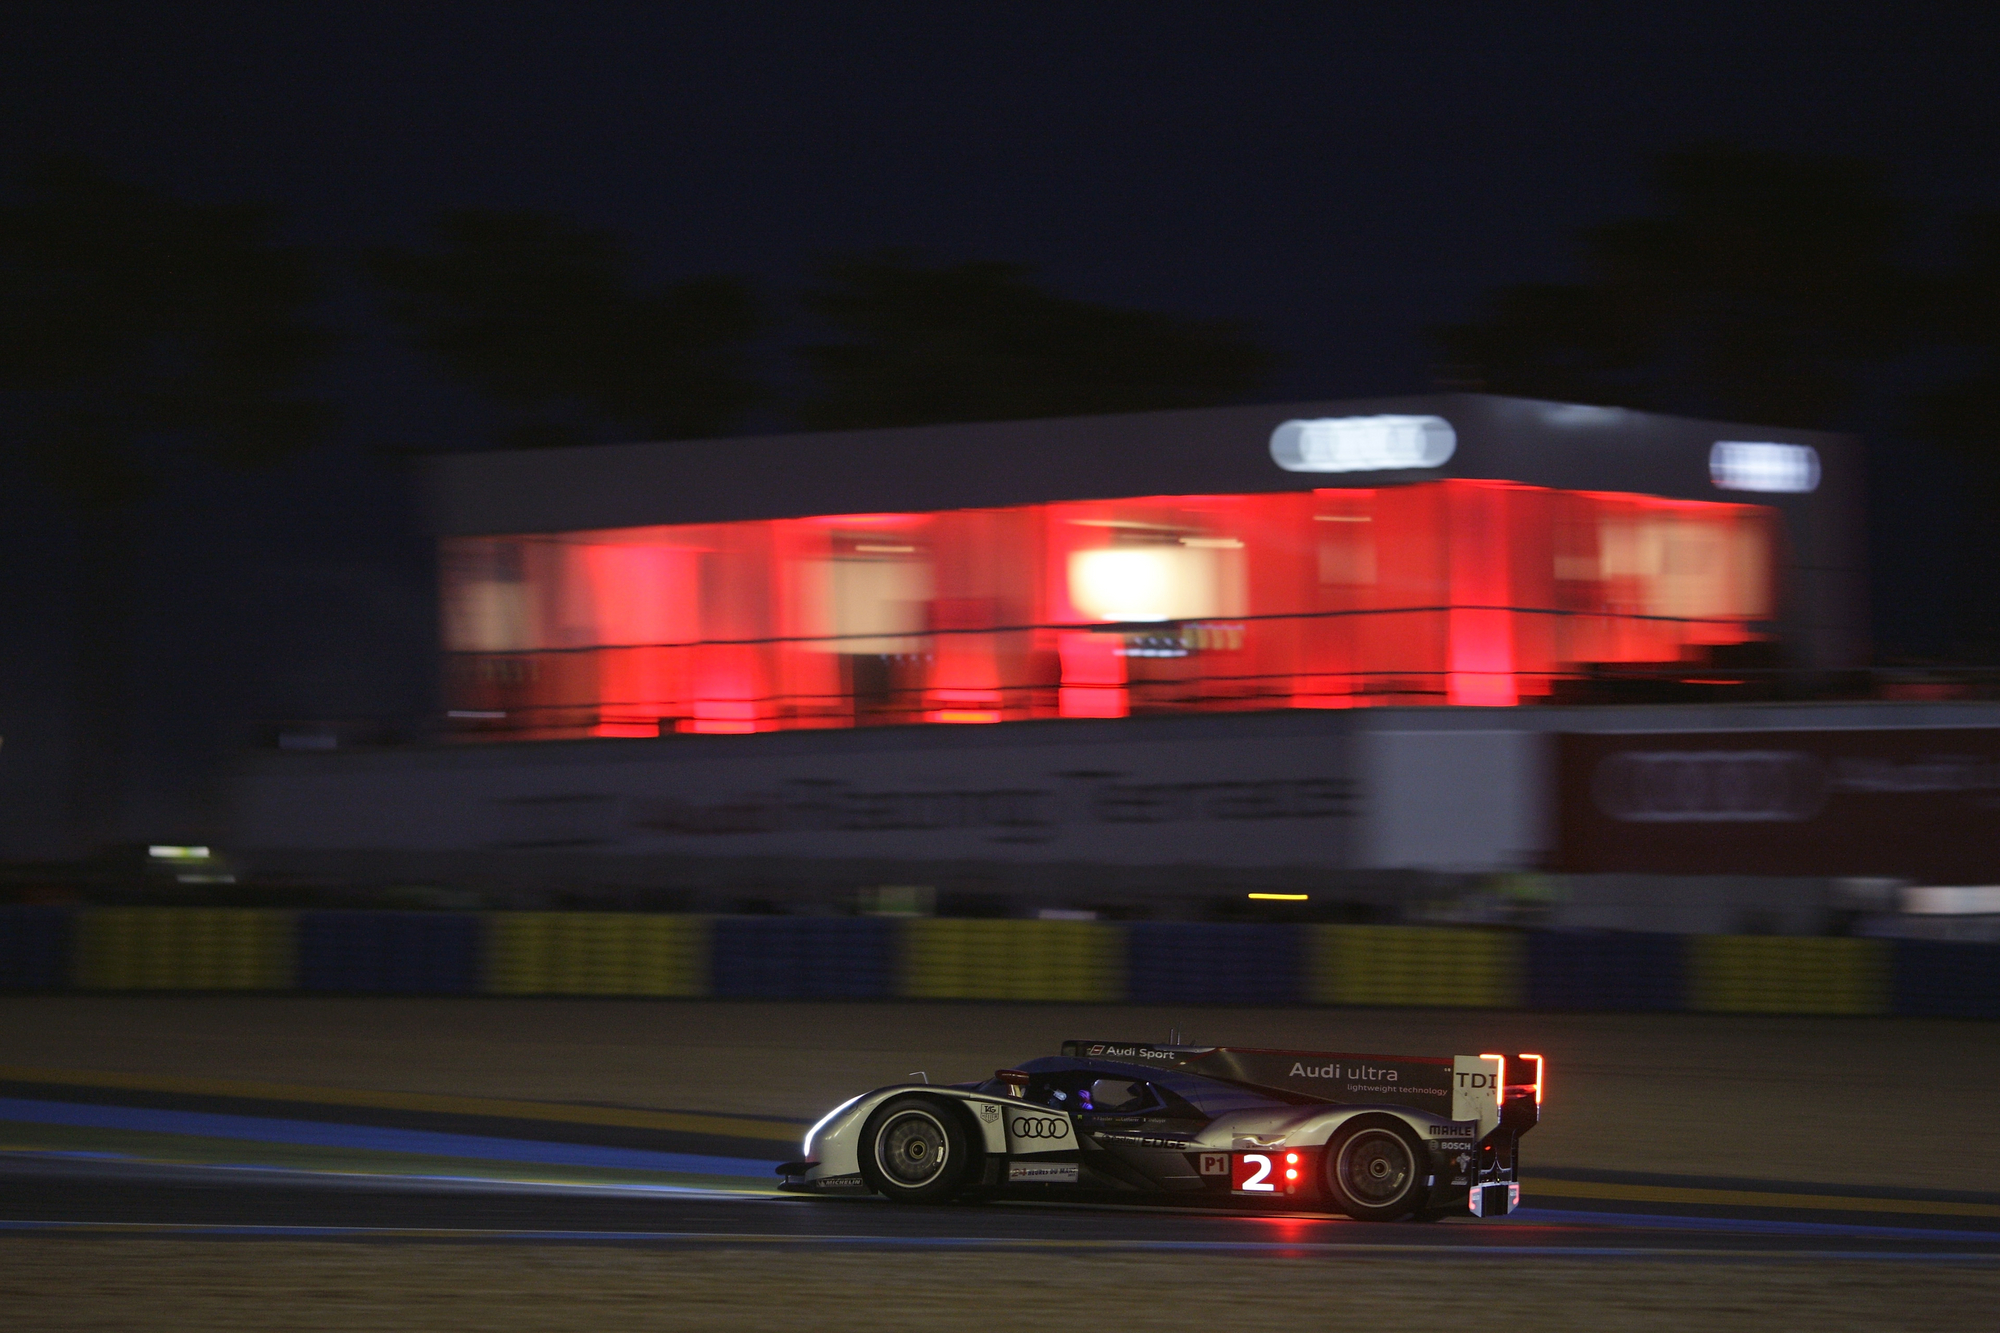 Audi takes pole at Le Mans